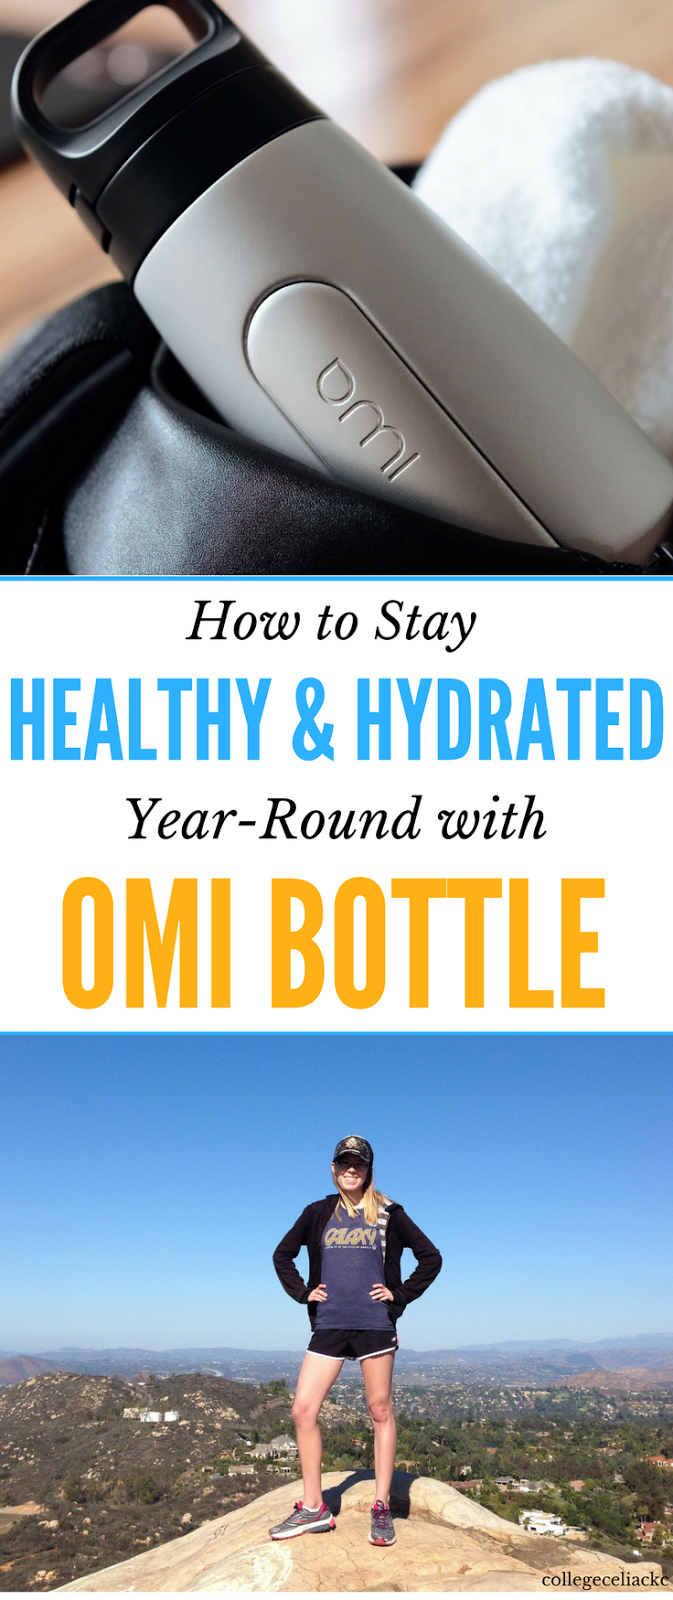 How to Stay Healthy and Hydrated Year-Round with OMI Bottle